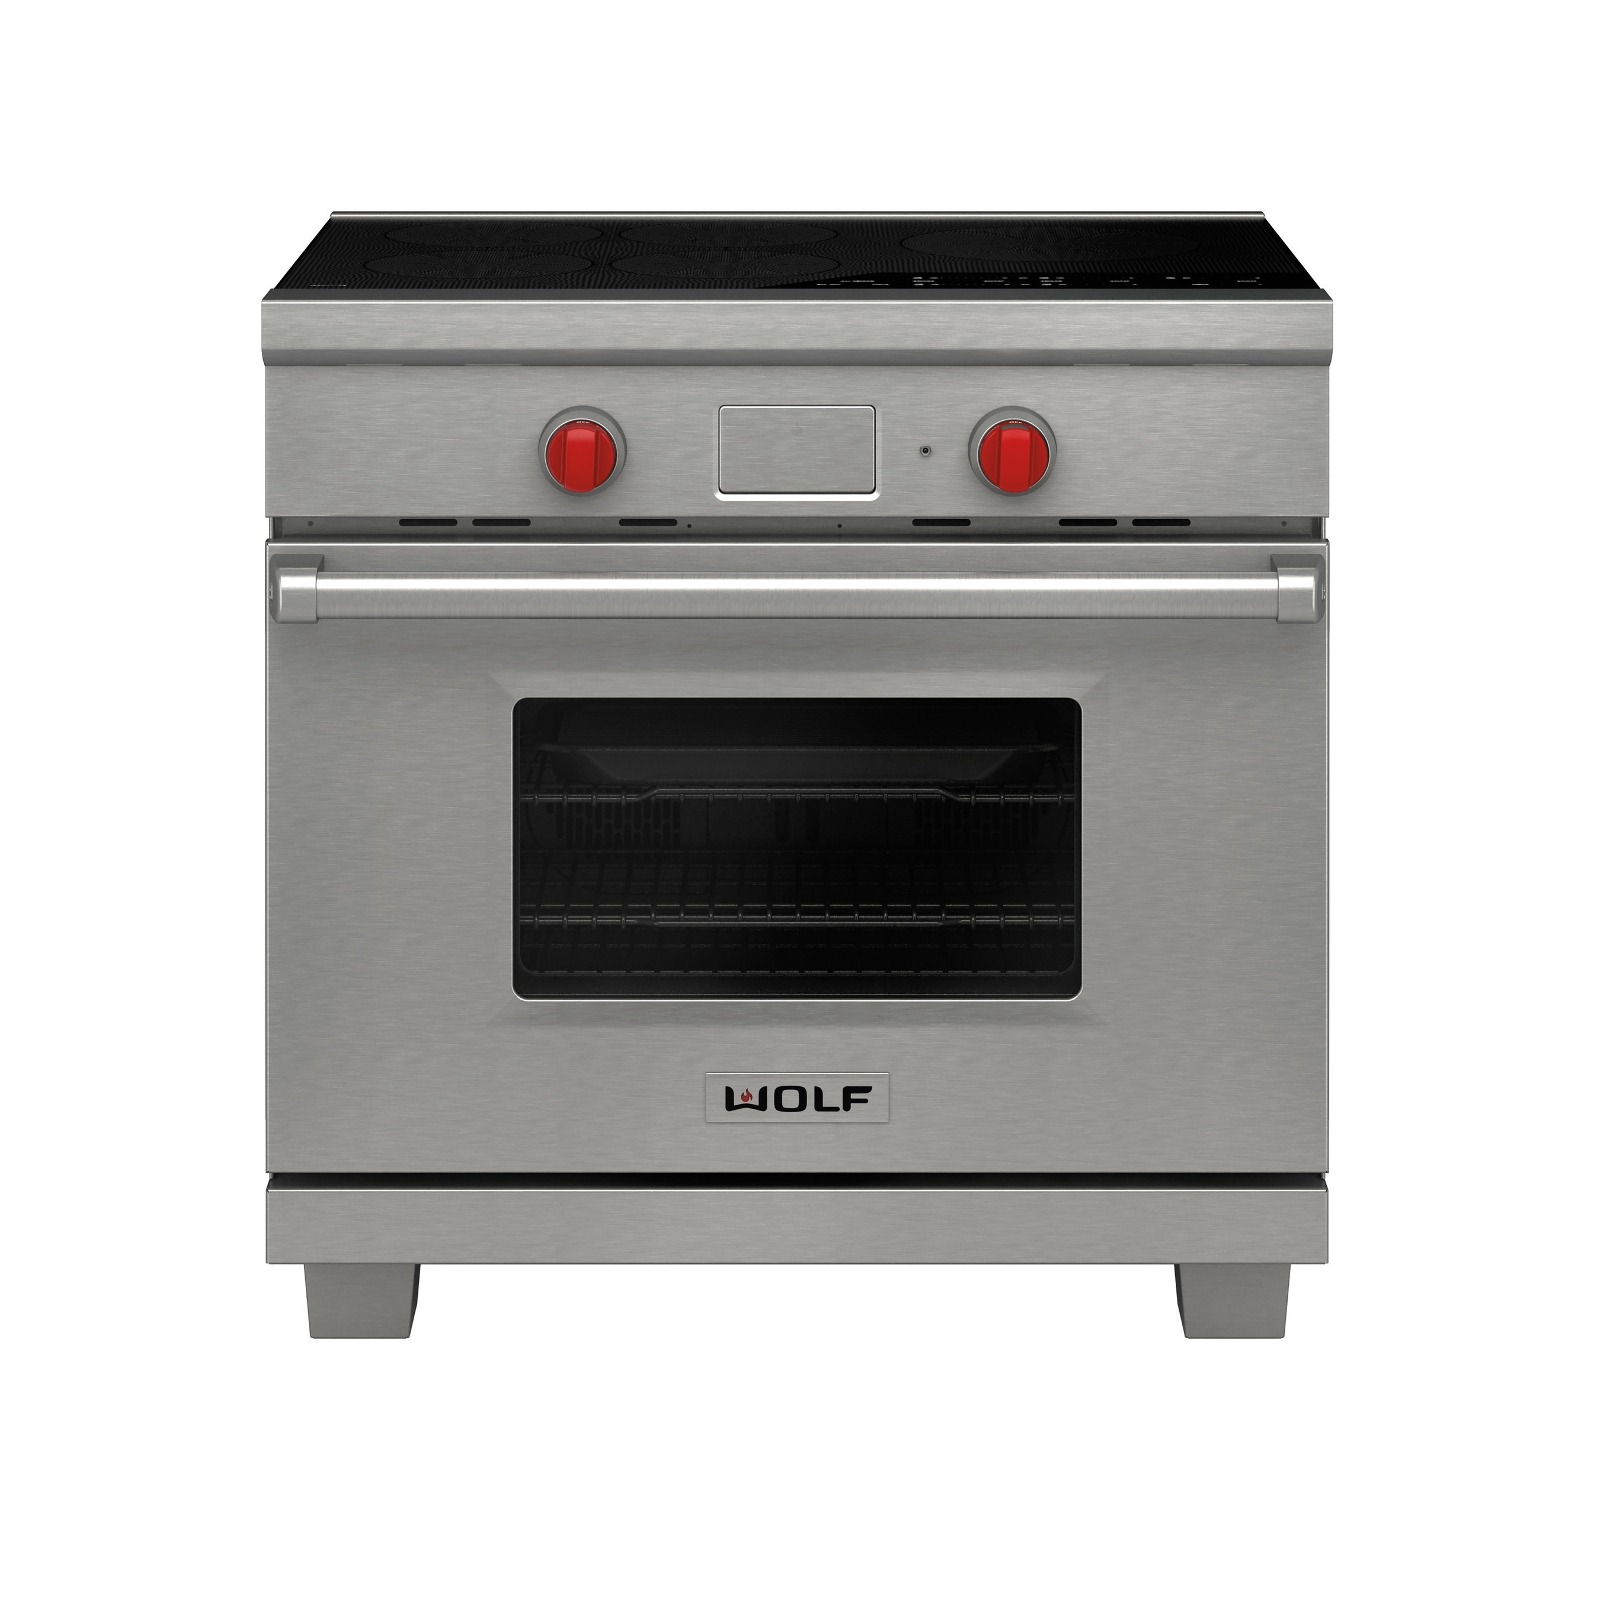 Induction Cooking Appliances ~ Household appliances archives page of kitchenware